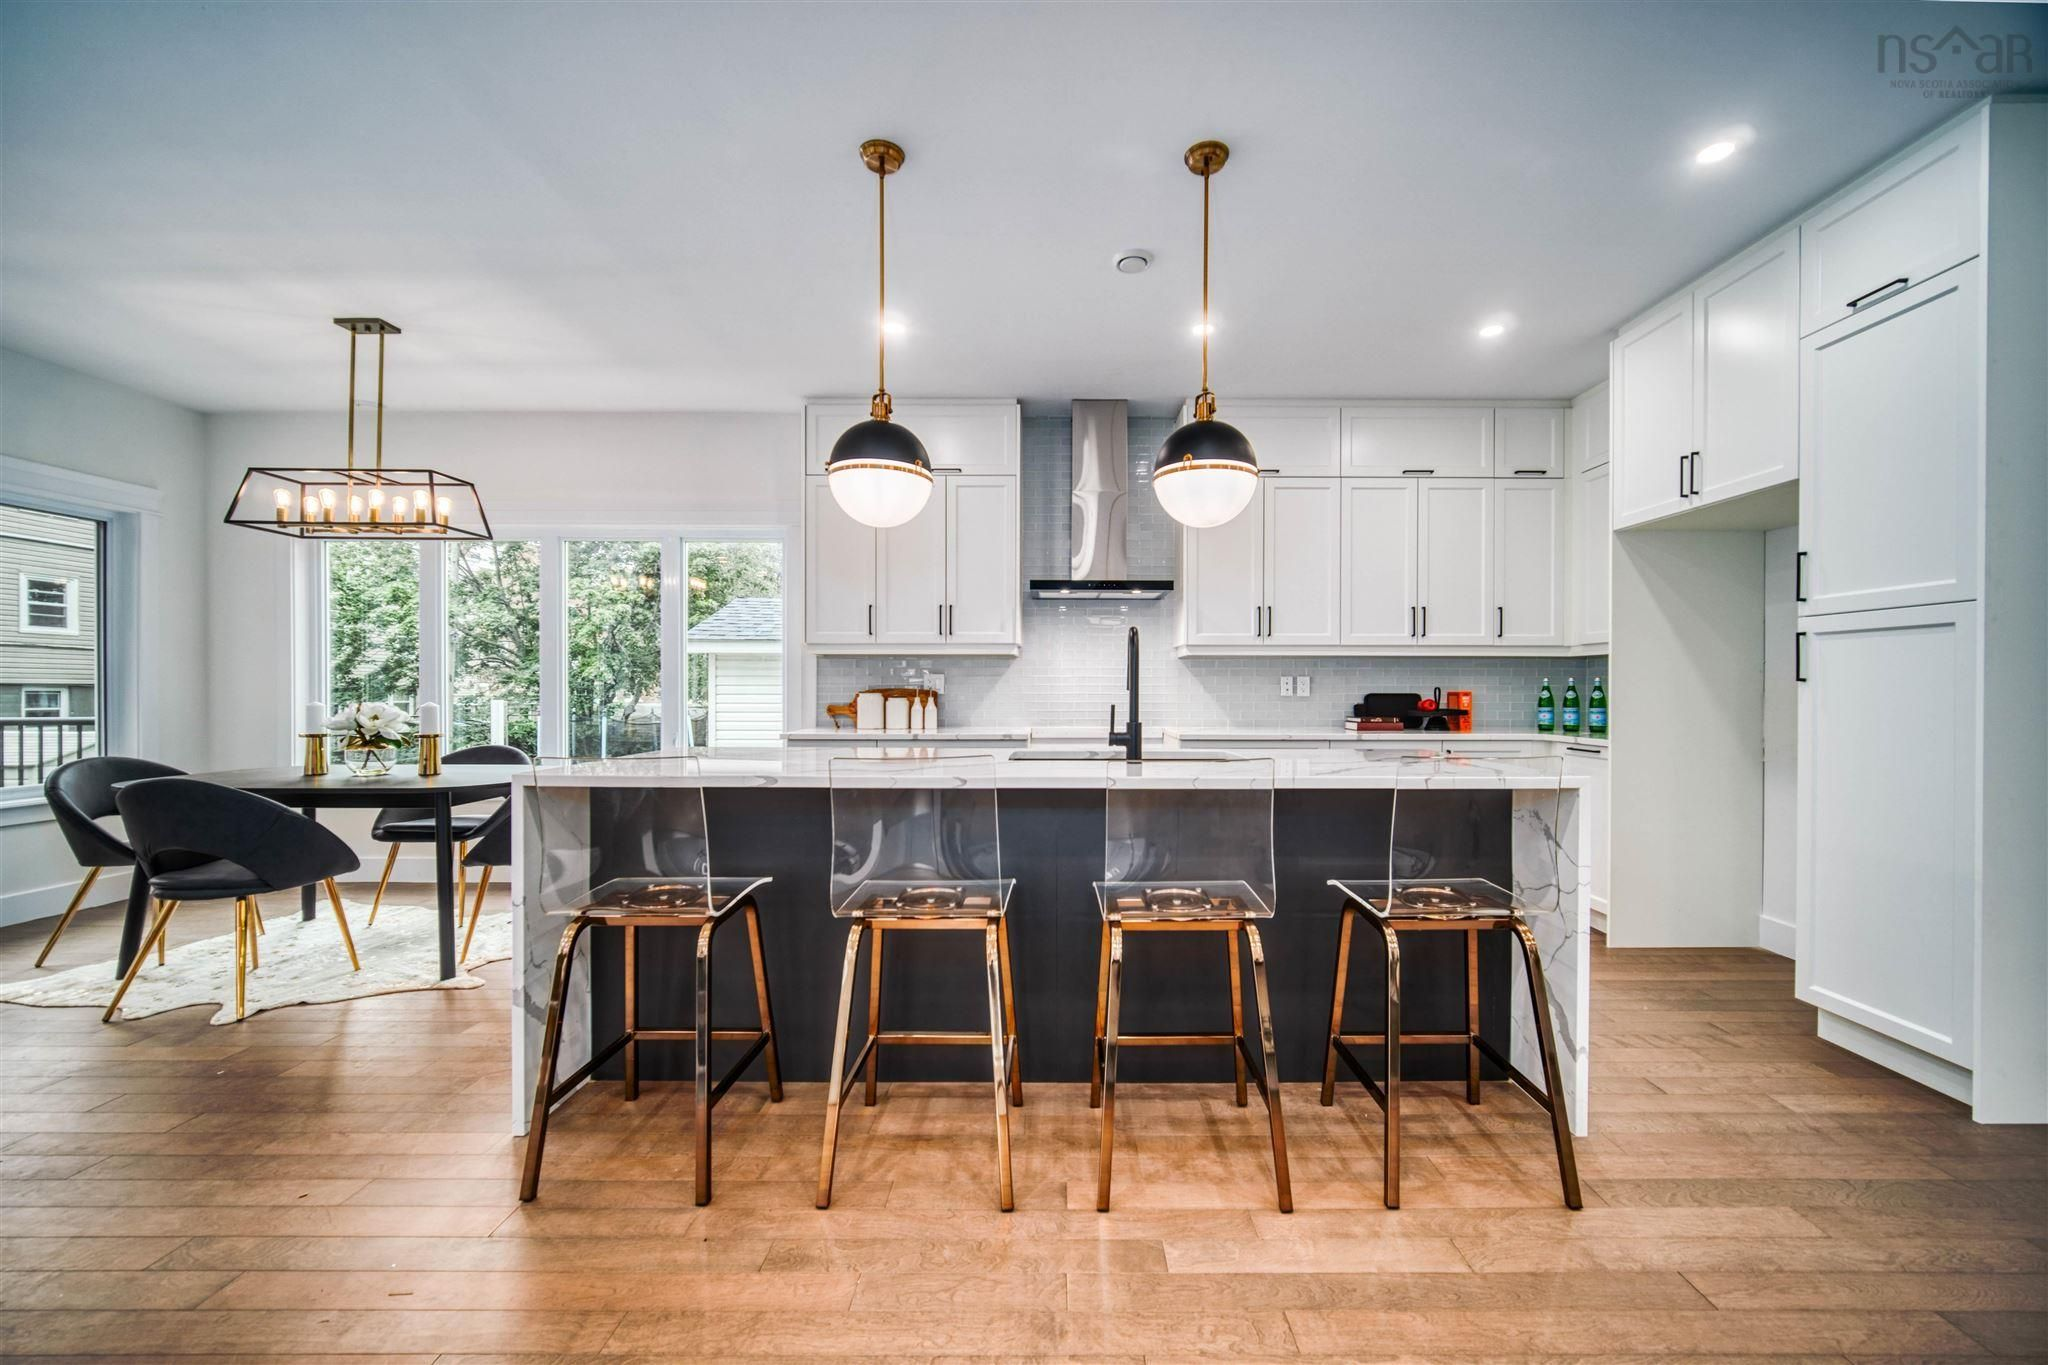 Main Photo: 6562 Roslyn Road in Halifax: 4-Halifax West Residential for sale (Halifax-Dartmouth)  : MLS®# 202123080